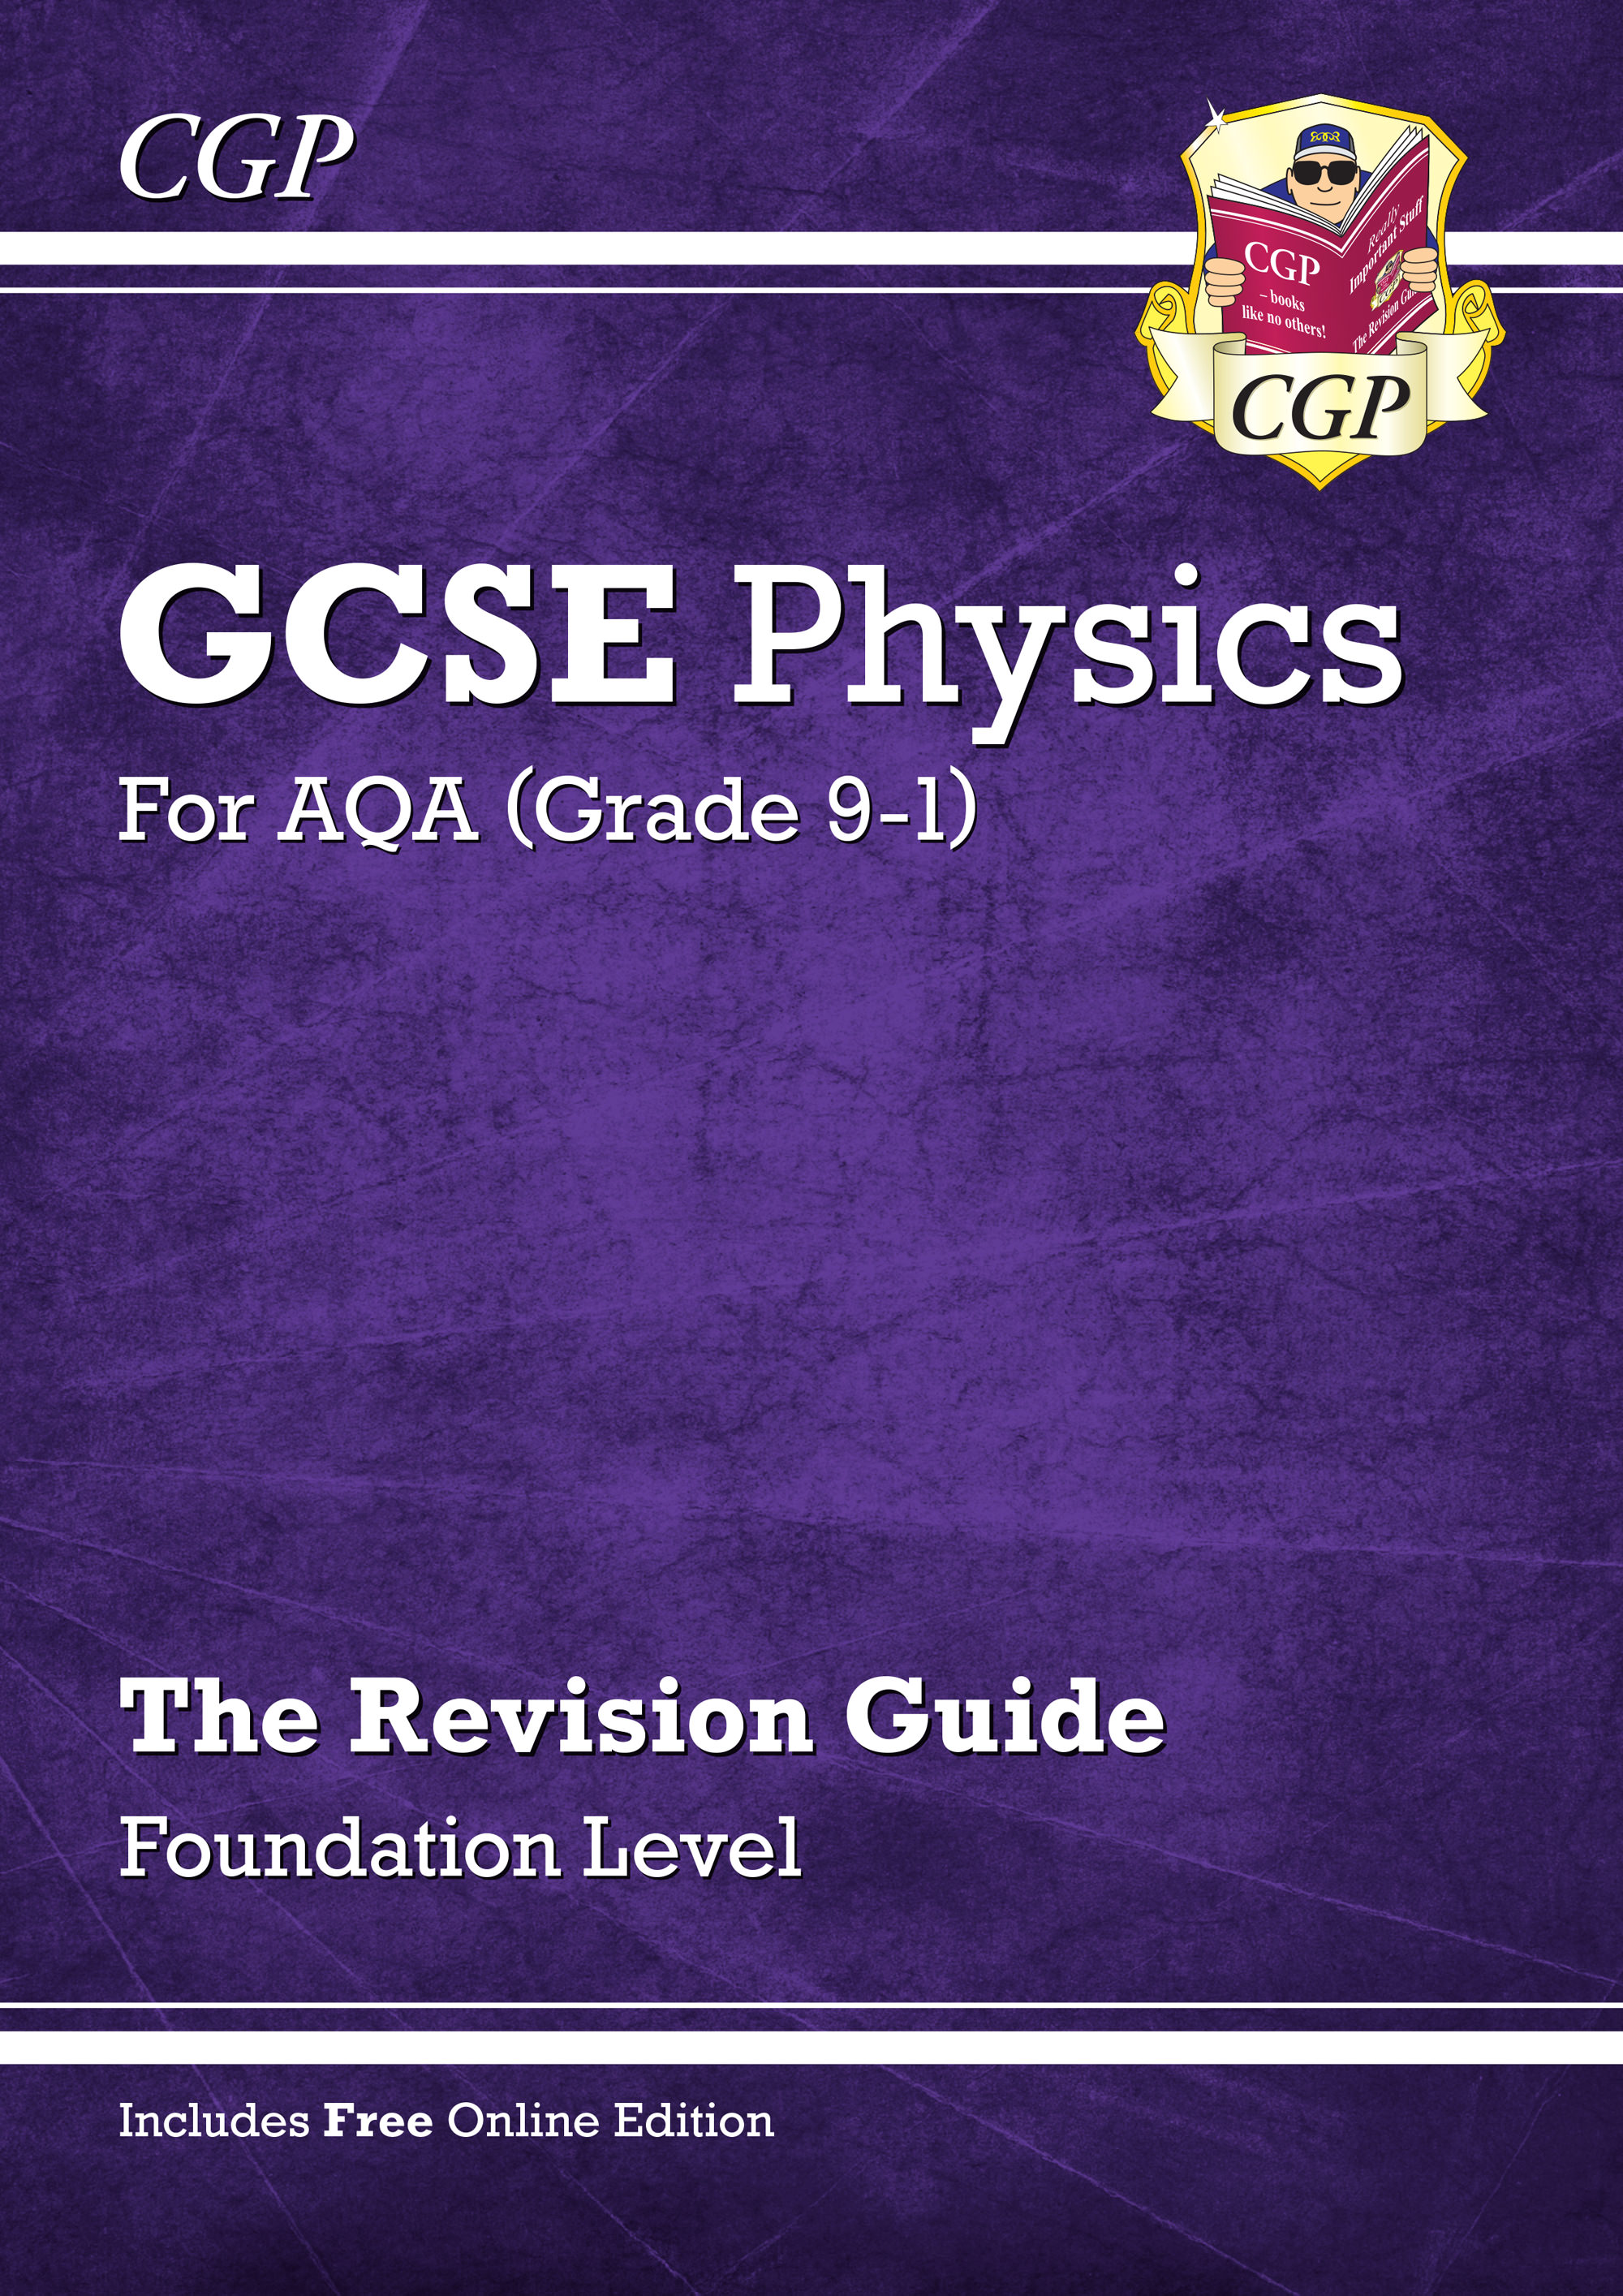 PAFR41 - Grade 9-1 GCSE Physics: AQA Revision Guide with Online Edition - Foundation